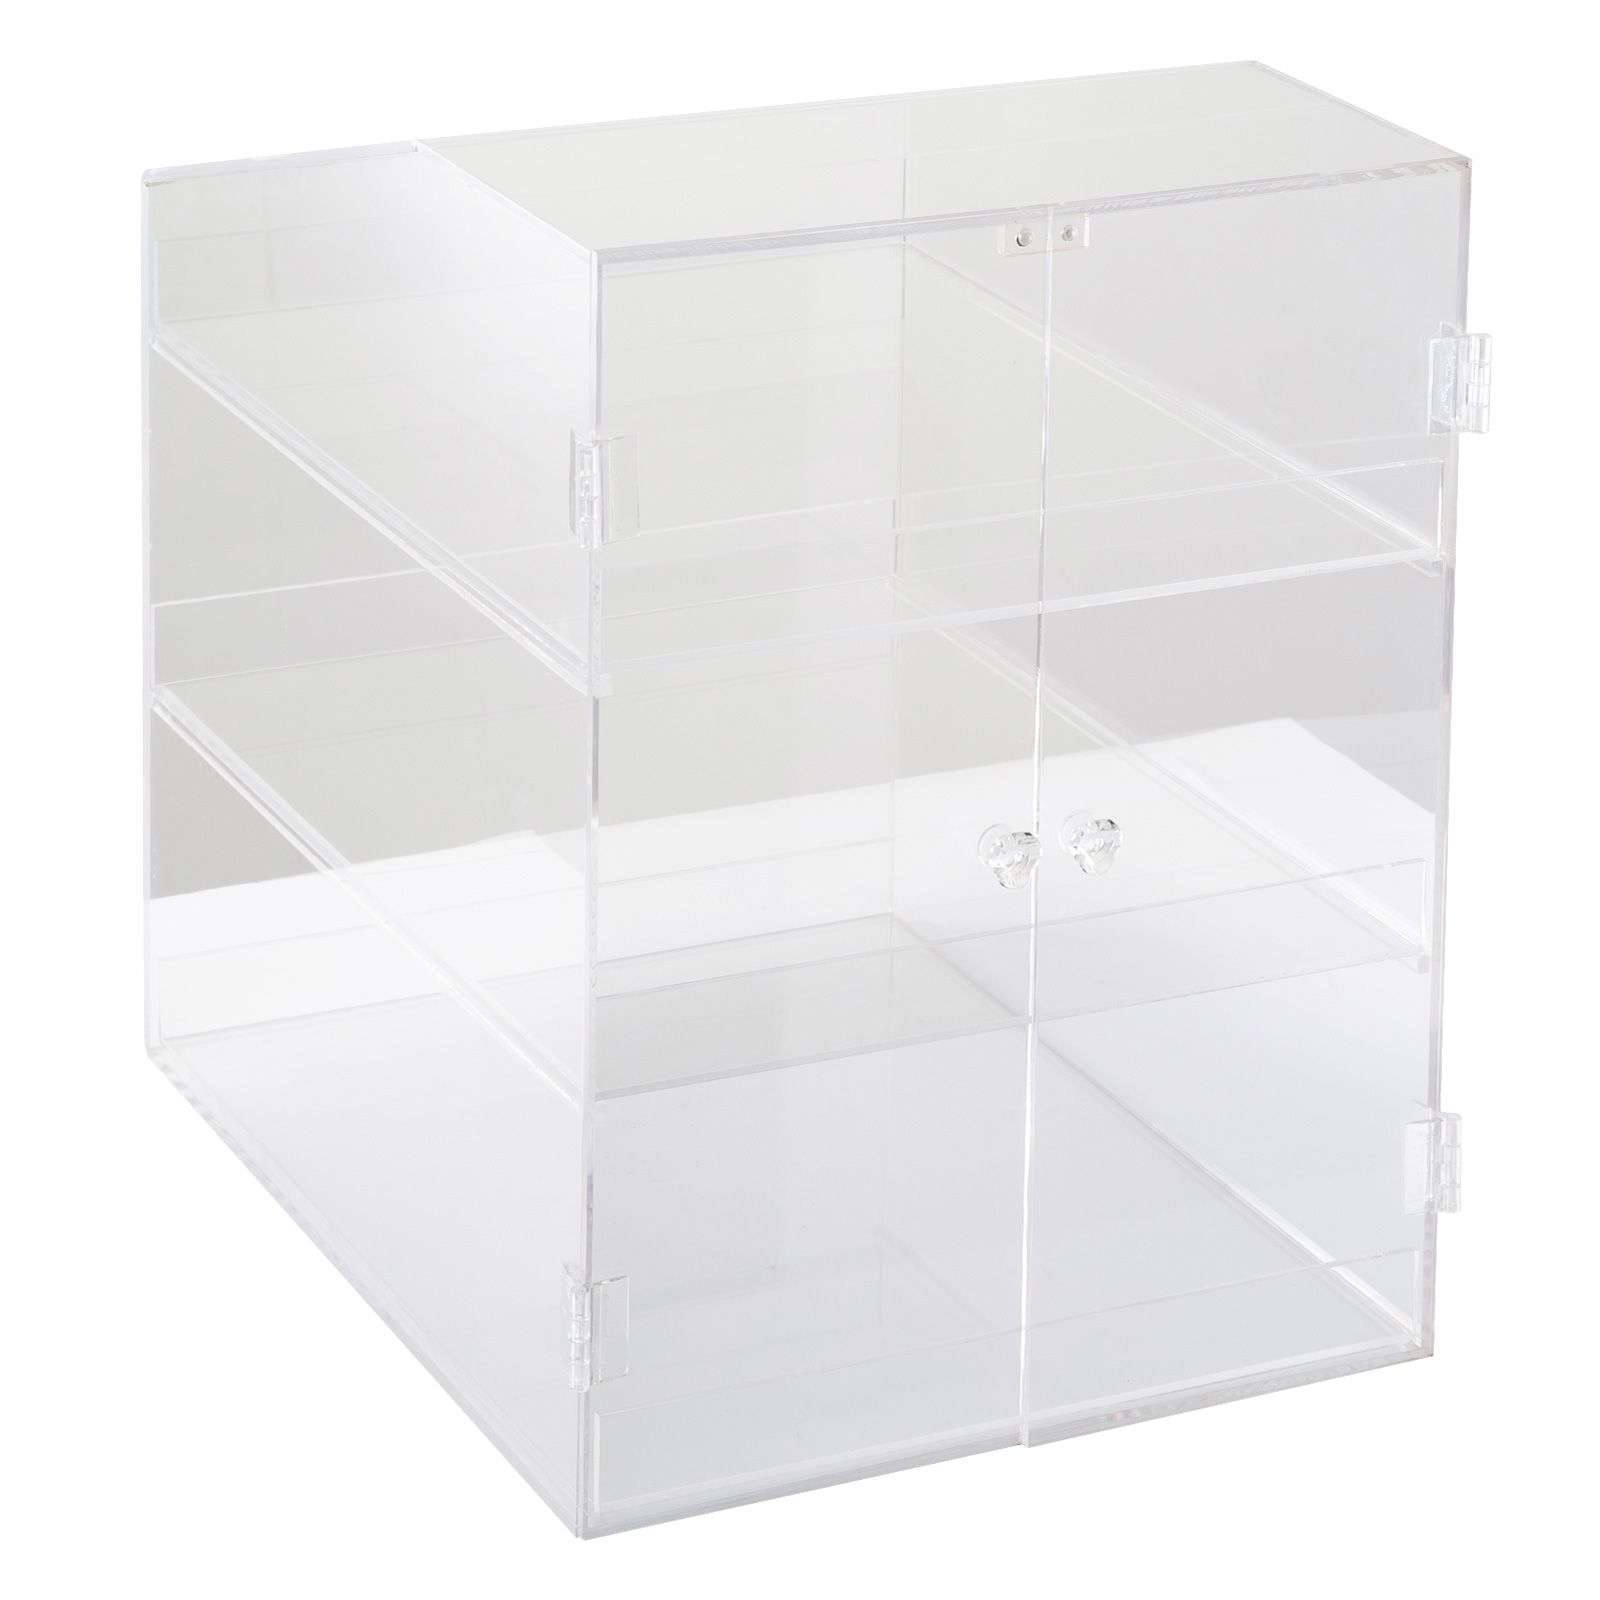 thumbnail 45 - 2-3-4-Shelves-Acrylic-Display-Cabinet-Glued-Unassembled-Bakery-Clear-Pastry